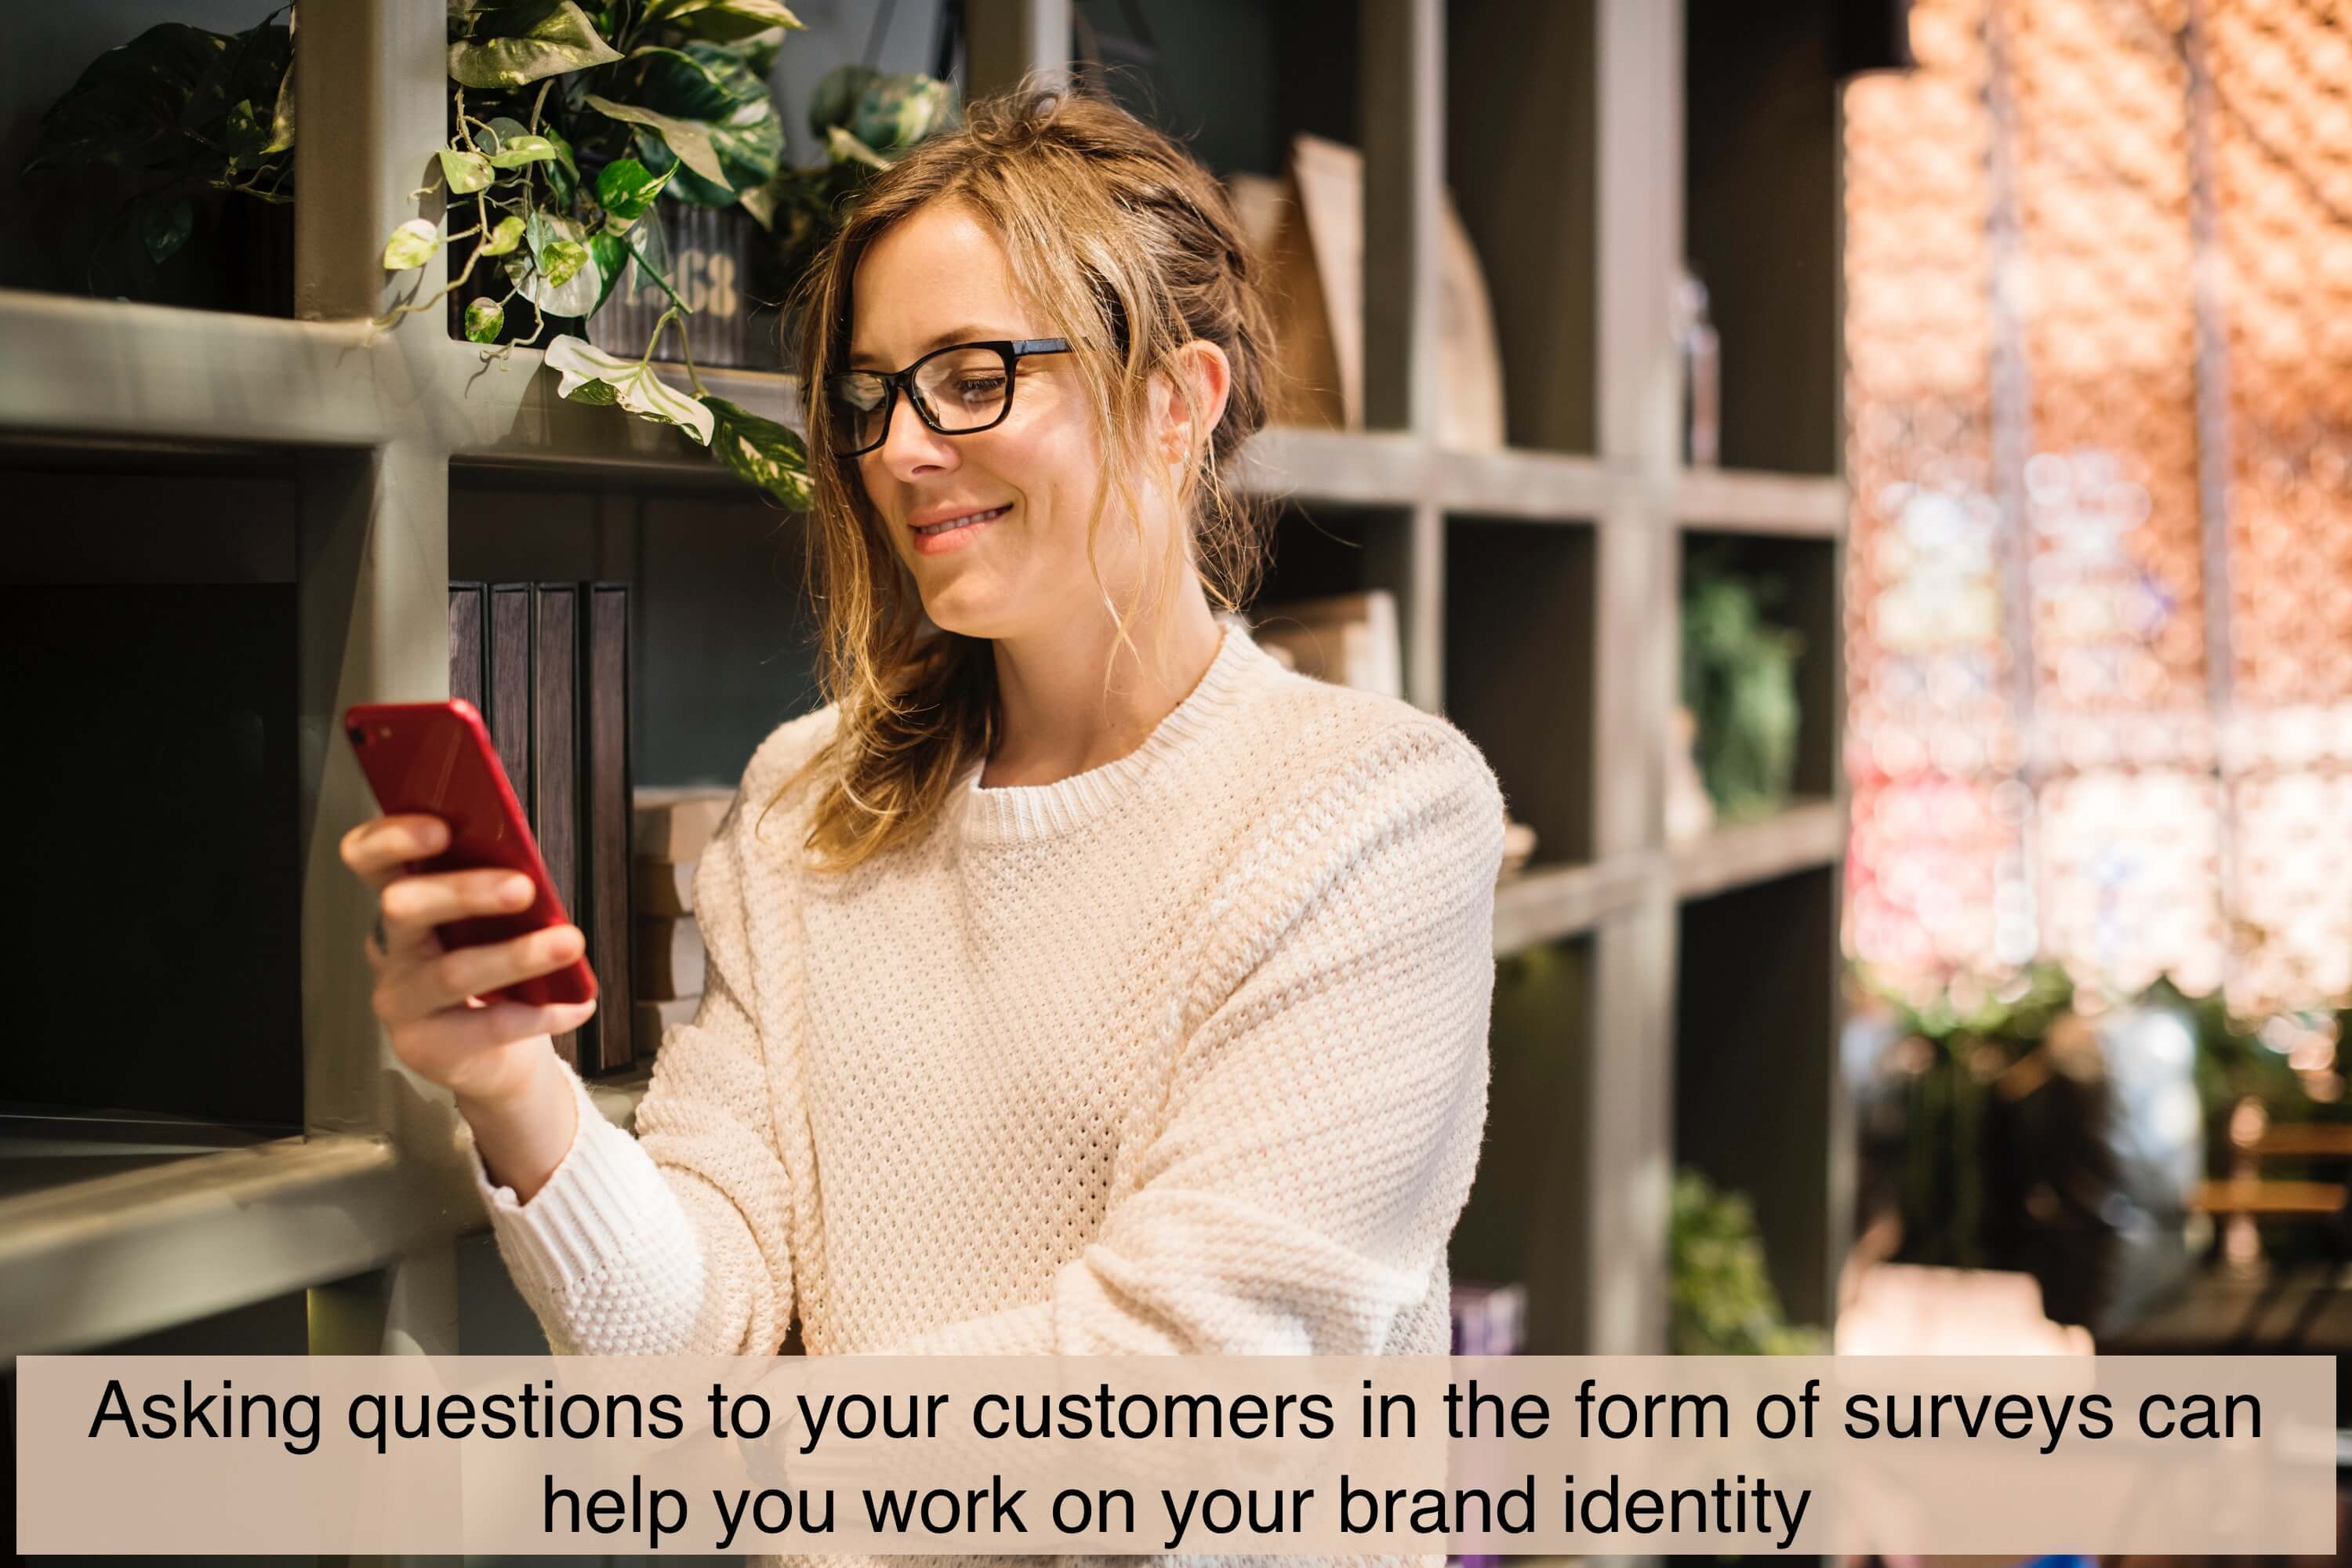 Asking questions to your customers in the form of surveys can help you work on your brand identity.